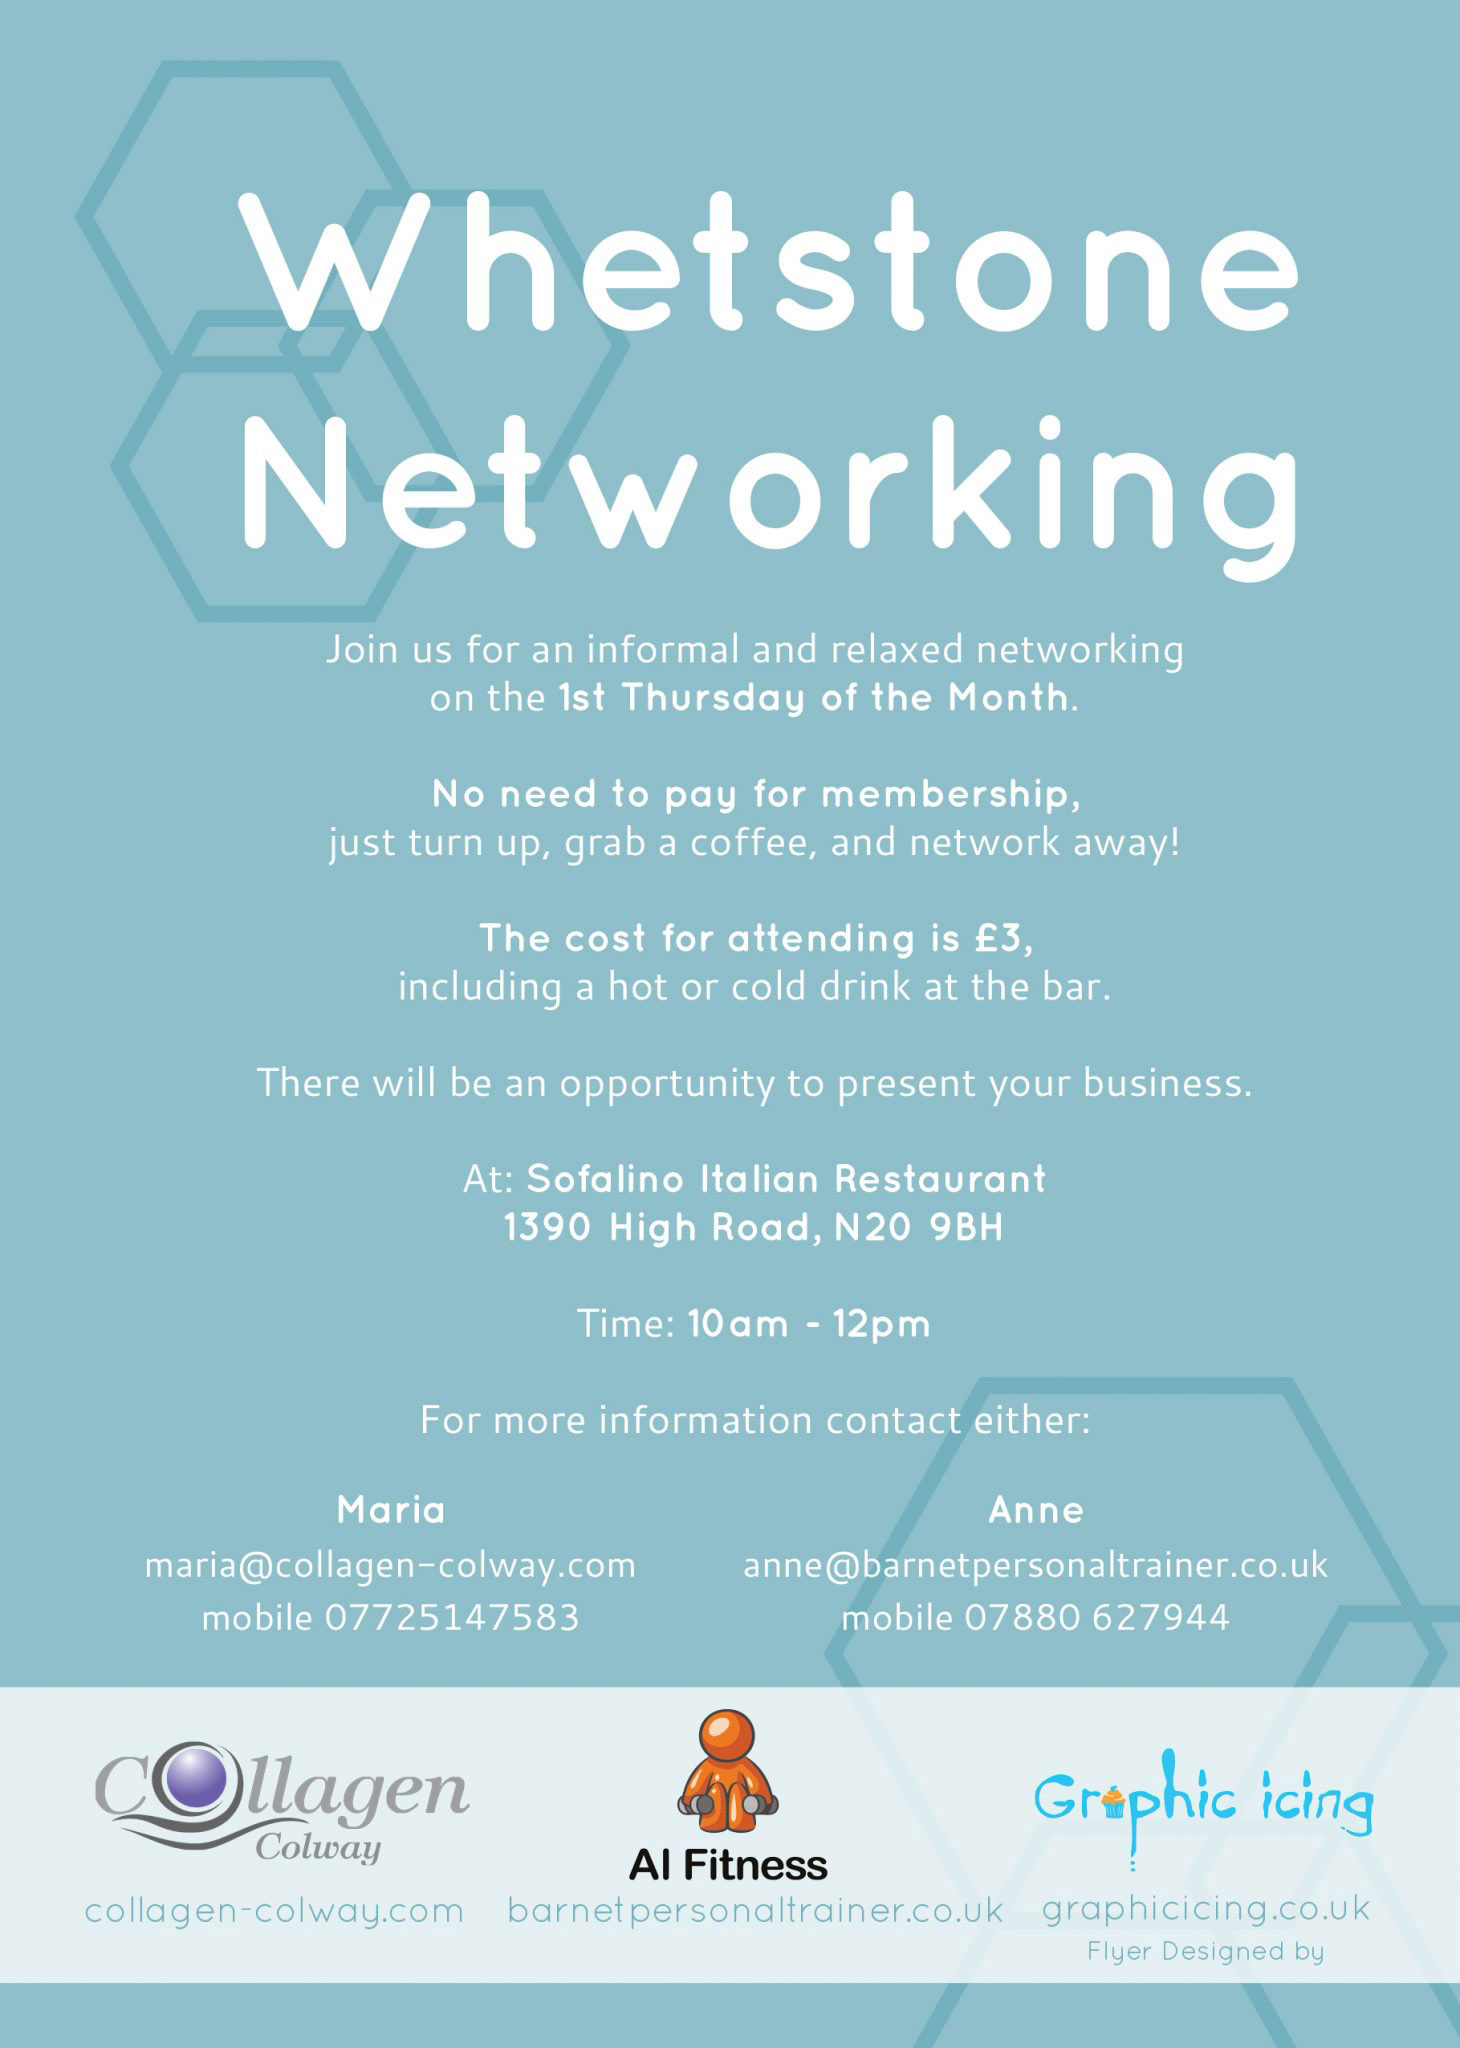 Whetstone Networking Flyer Design